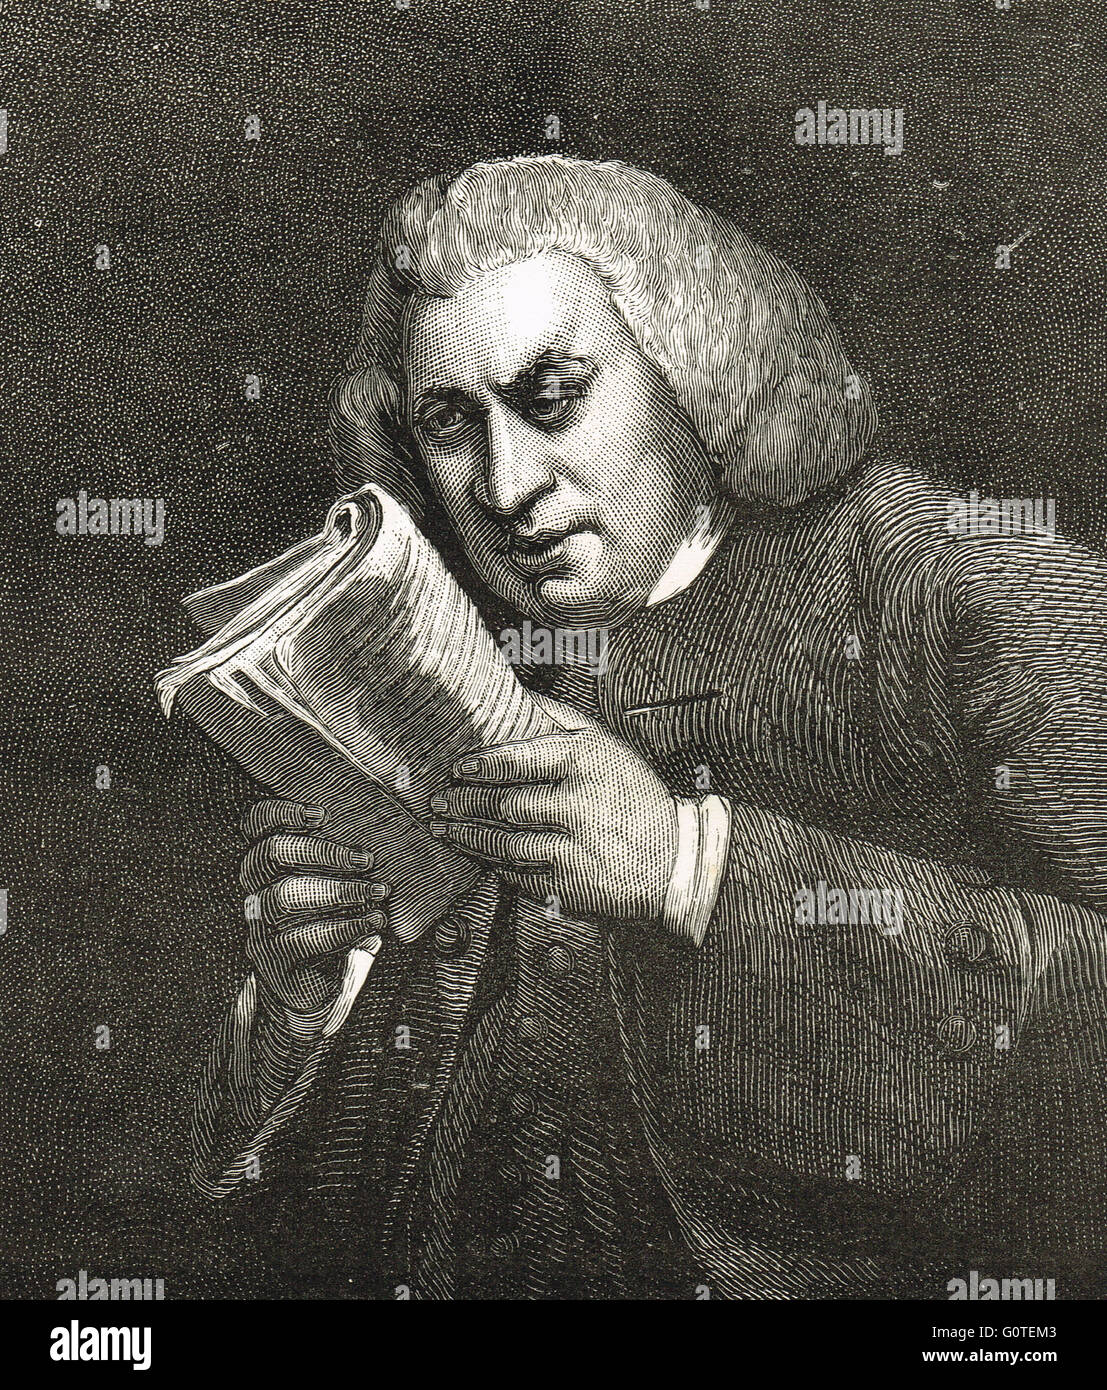 Dr Samuel Johnson lexicographer (1709-84)  Author of A Dictionary of the English Language published in 1755 Stock Photo